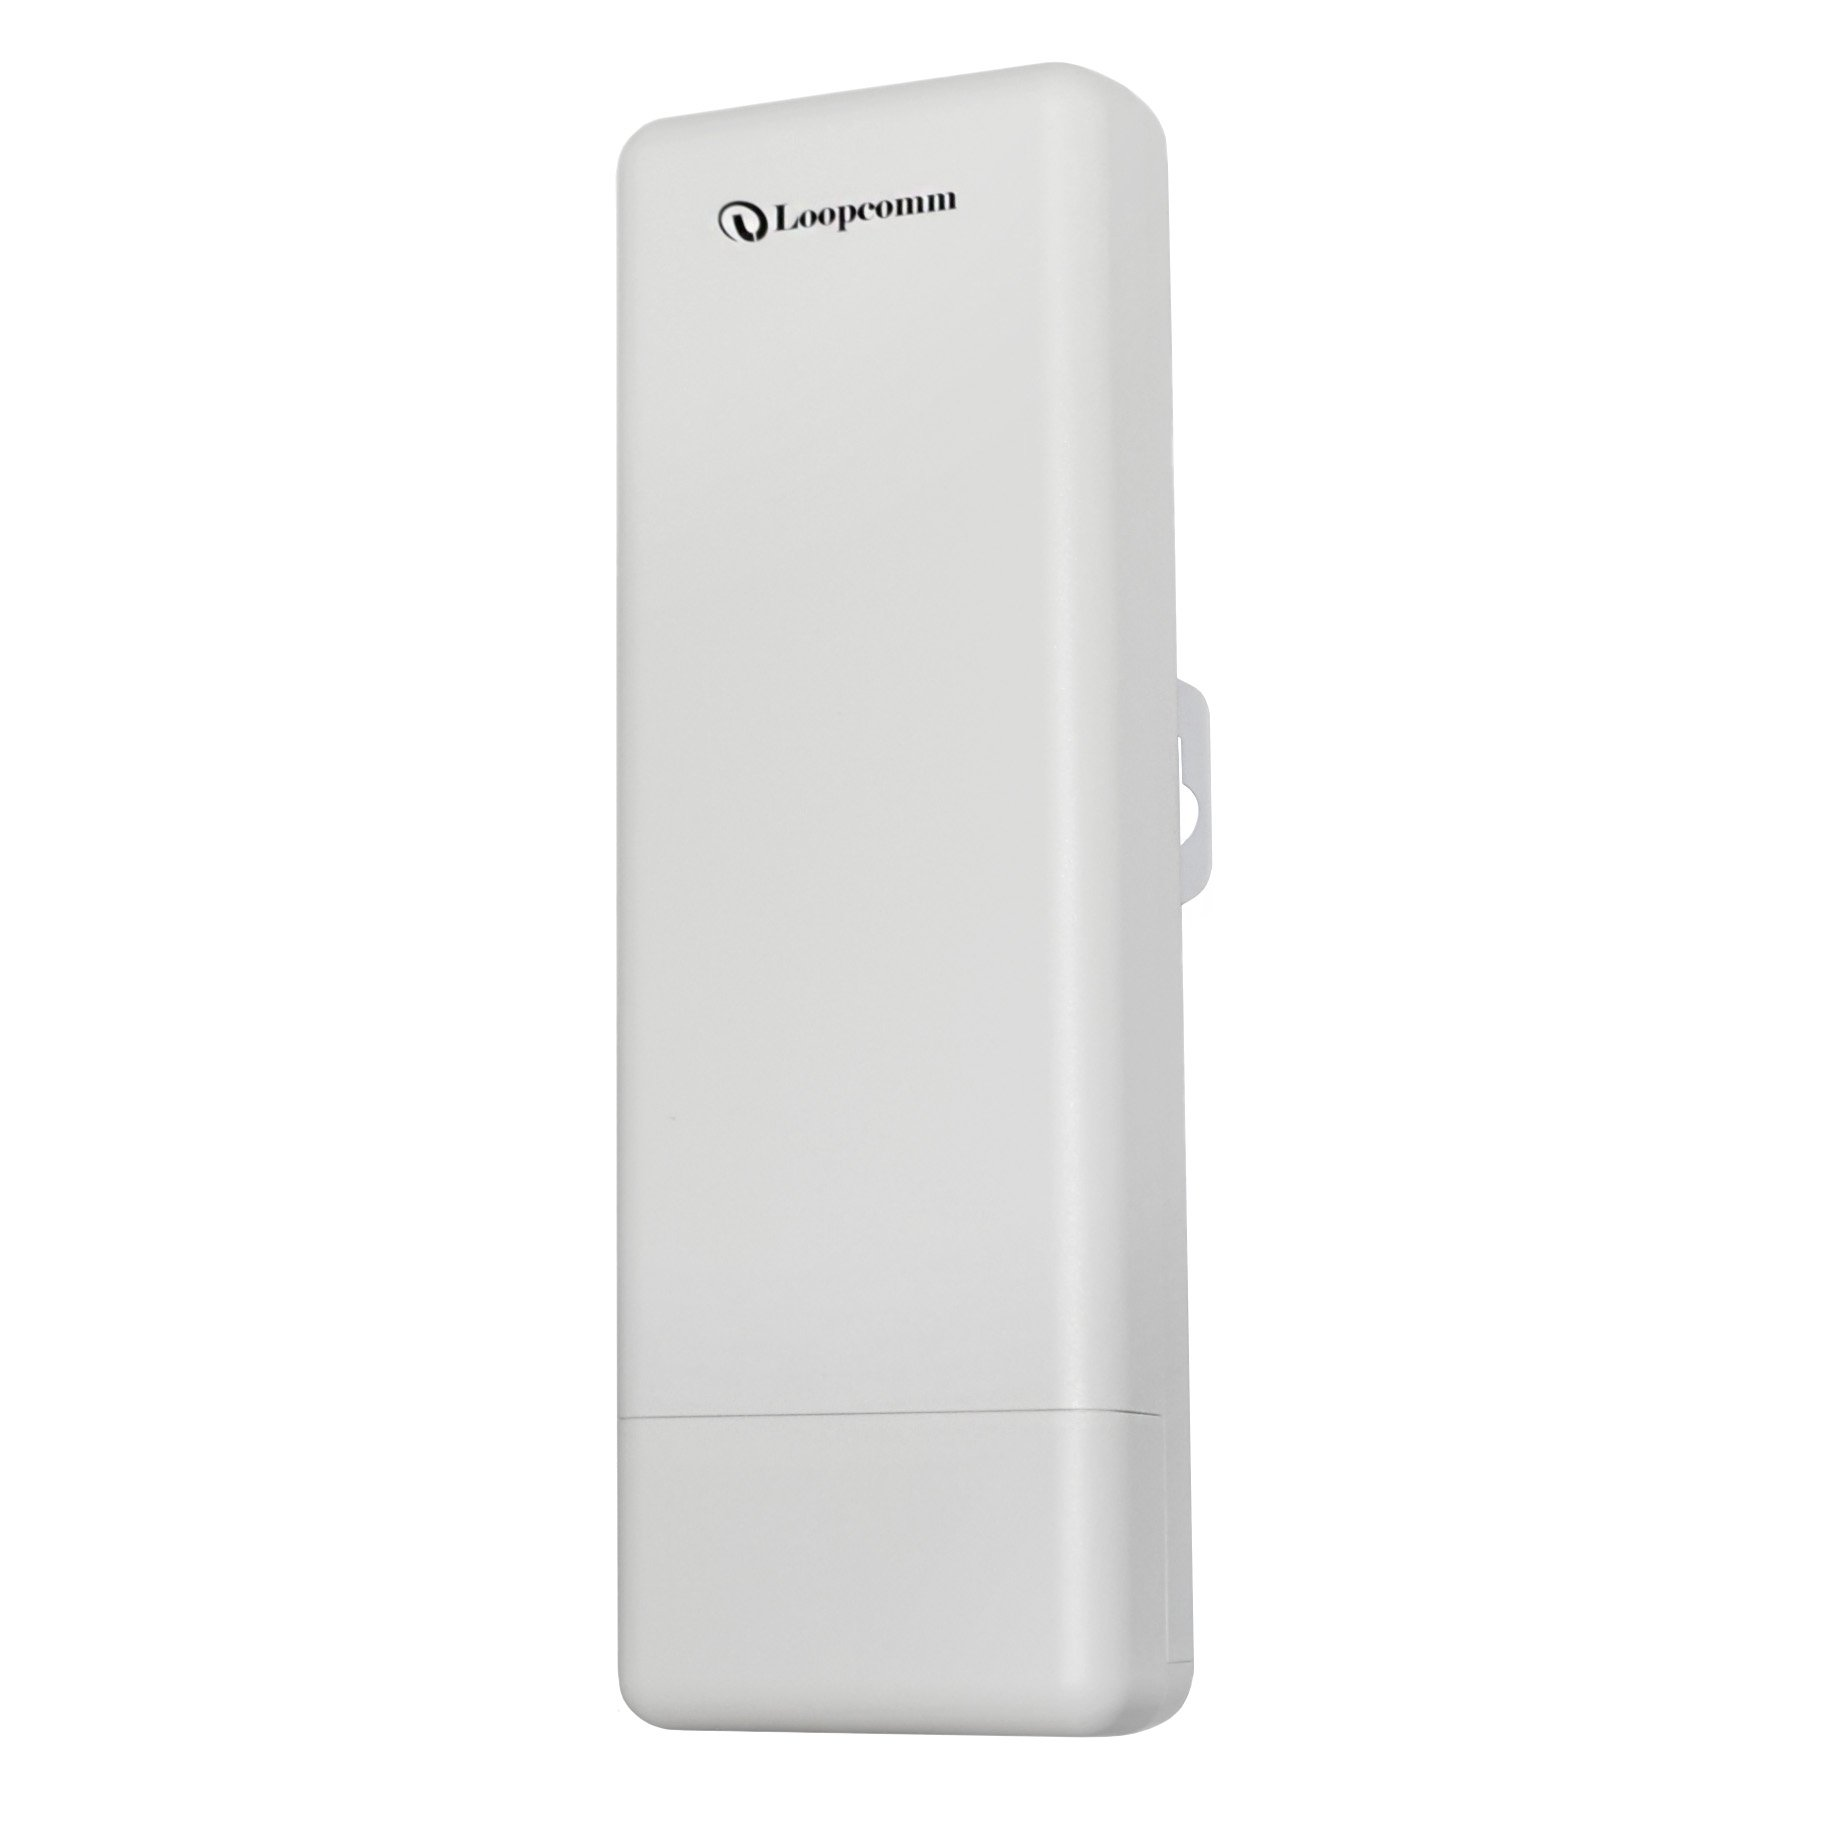 Loopcomm Outdoor 802.11b/g/n Wireless High Power CPE/AP/Router/Clint/Bridge/Repeater (LP-7316K)